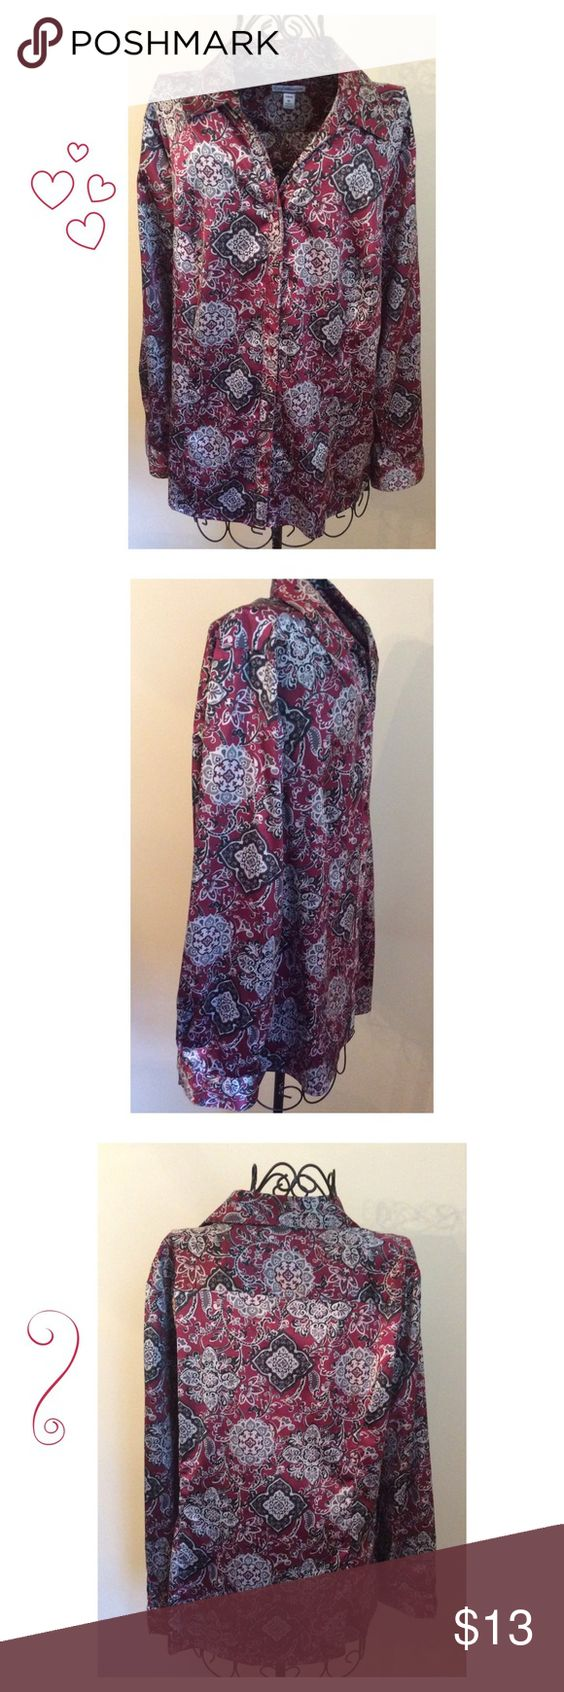 Lovely Dressy Button Down Top This pretty button down top is 97 % Polyester and 3% Spandex.  The colors are Burgandy  and and silver.  The material has a lovely sheen.  Perfect for the office or favorite outing. croft & barrow Tops Blouses